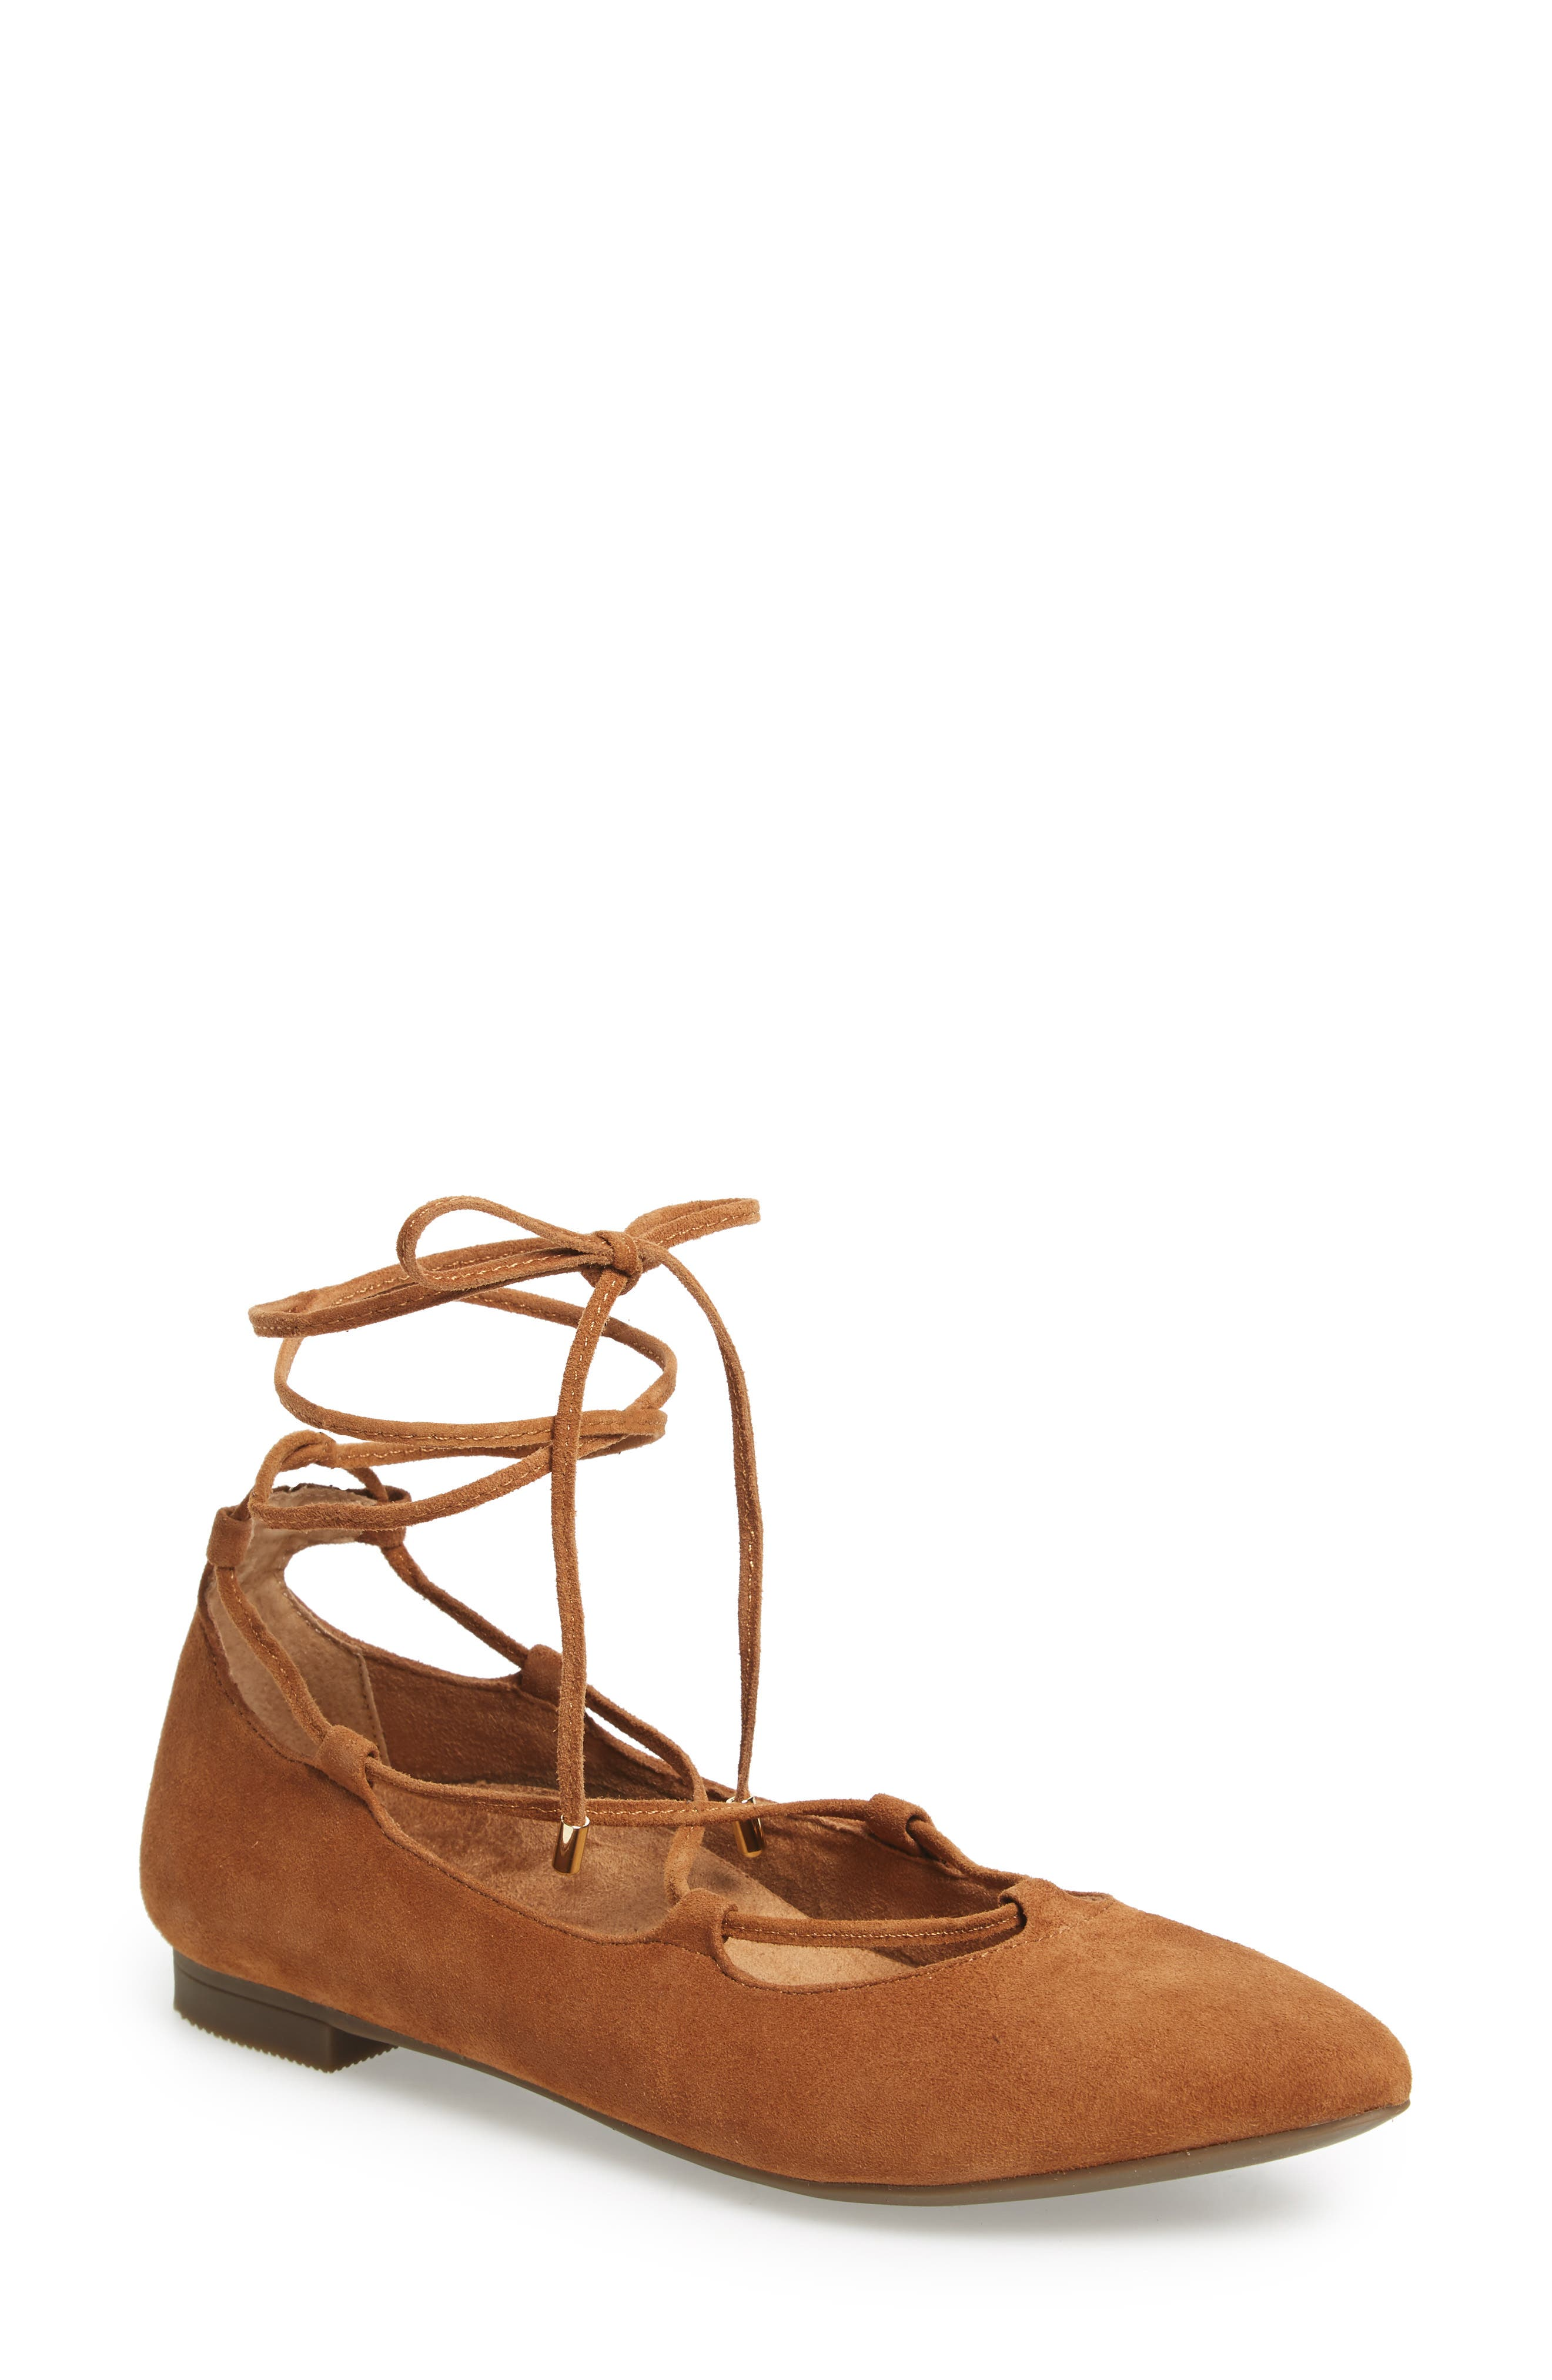 Alternate Image 1 Selected - Vionic Lucinda Ghillie Lace Flat (Women)